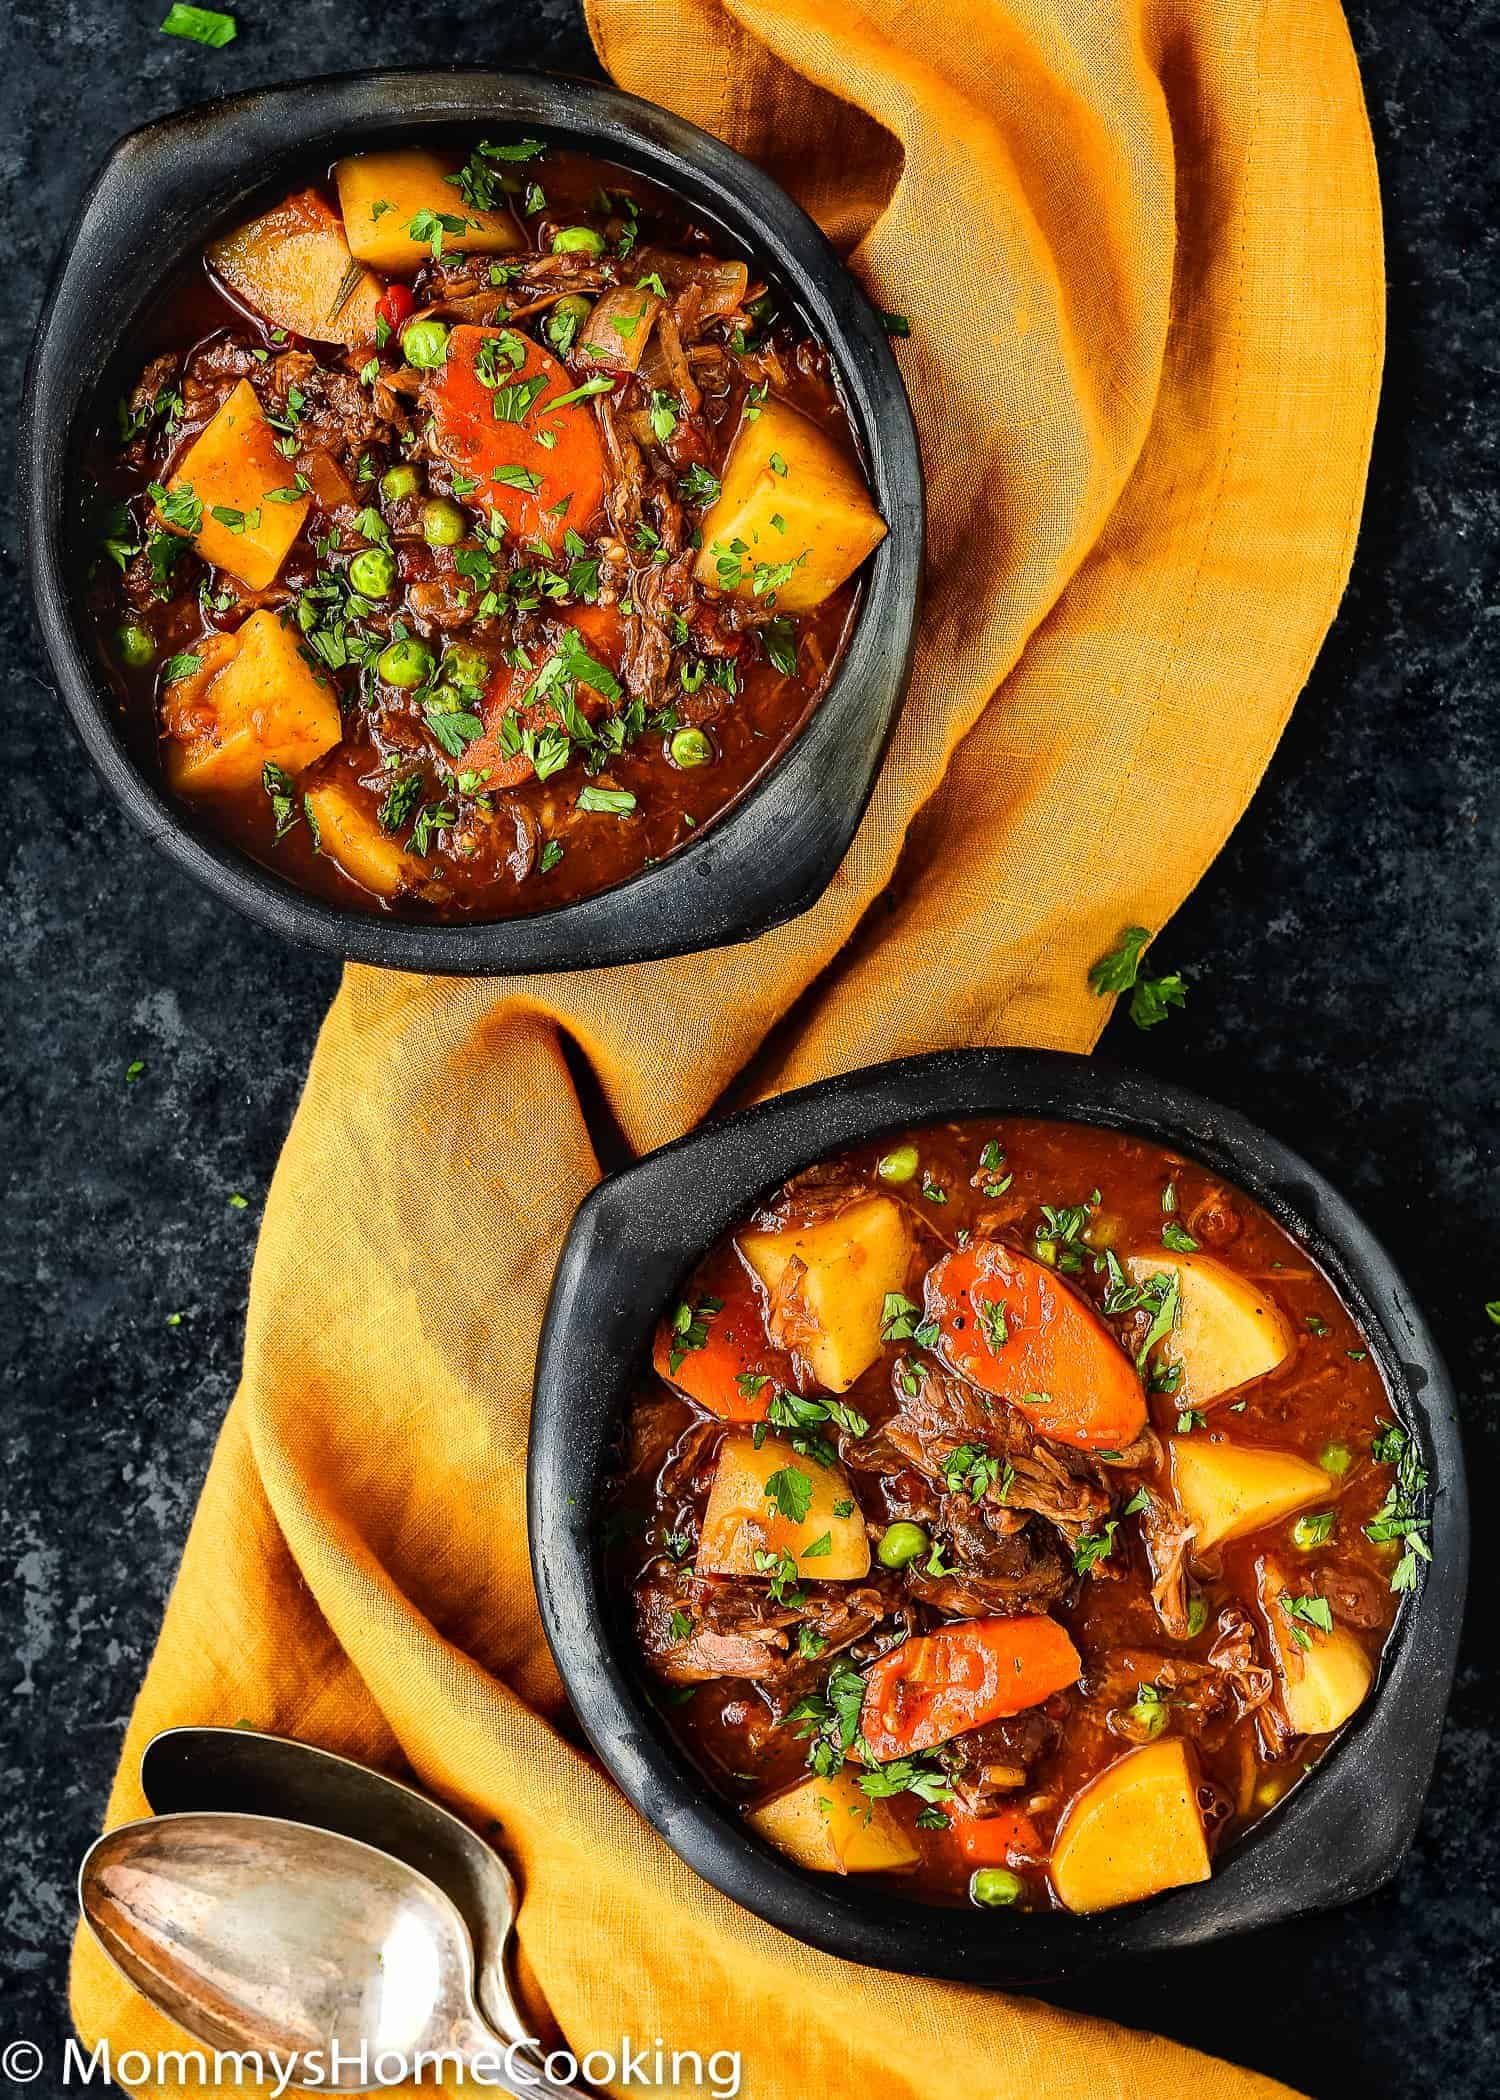 This Slow Cooker Oxtail Stew is hearty, mouthwatering and incredibly tender! Yes, Oxtail!! Are you intrigued? Keep reading to see how you can turn this underrated cut of meat in the most delicious beef stew ever. Melt-in-your-mouth beef loaded with potatoes, carrots, and peas, all smothered in an incredibly tasty stew broth, this Slow Cooker Oxtail Stew is a comforting, delicious meal any day of the week. http://mommyshomecooking.com